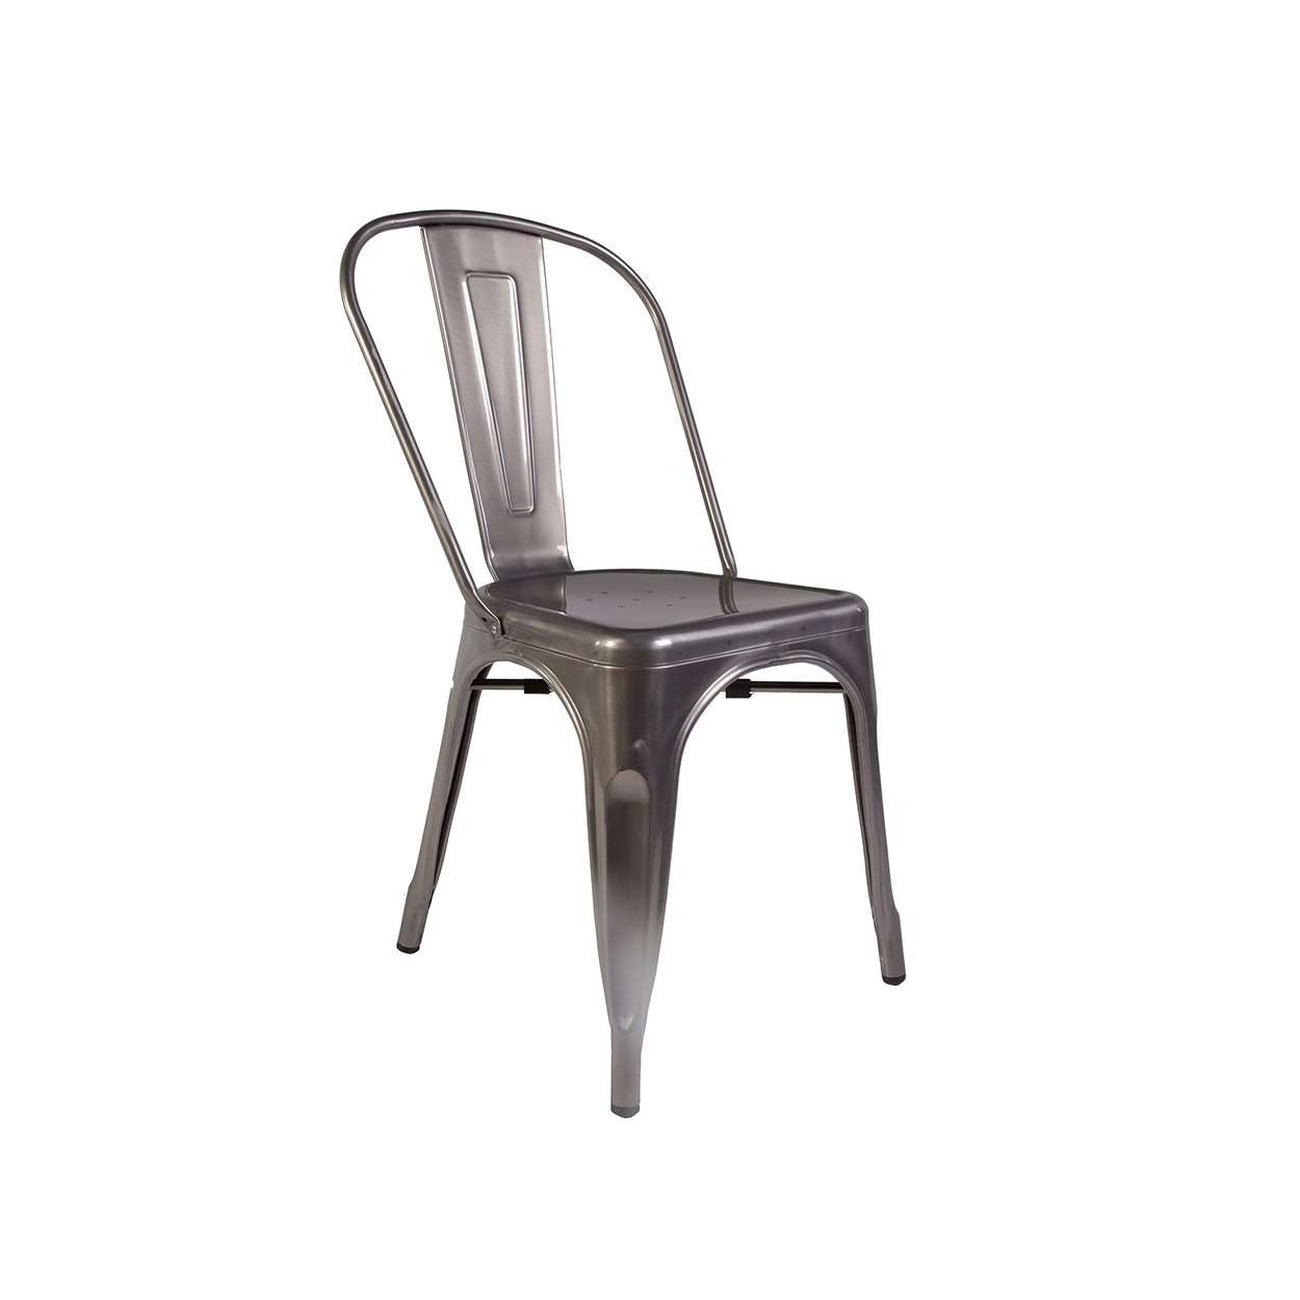 4 X Marais Side Chair Set In Gunmetal   *Free Local Shipping Only* [50gift]